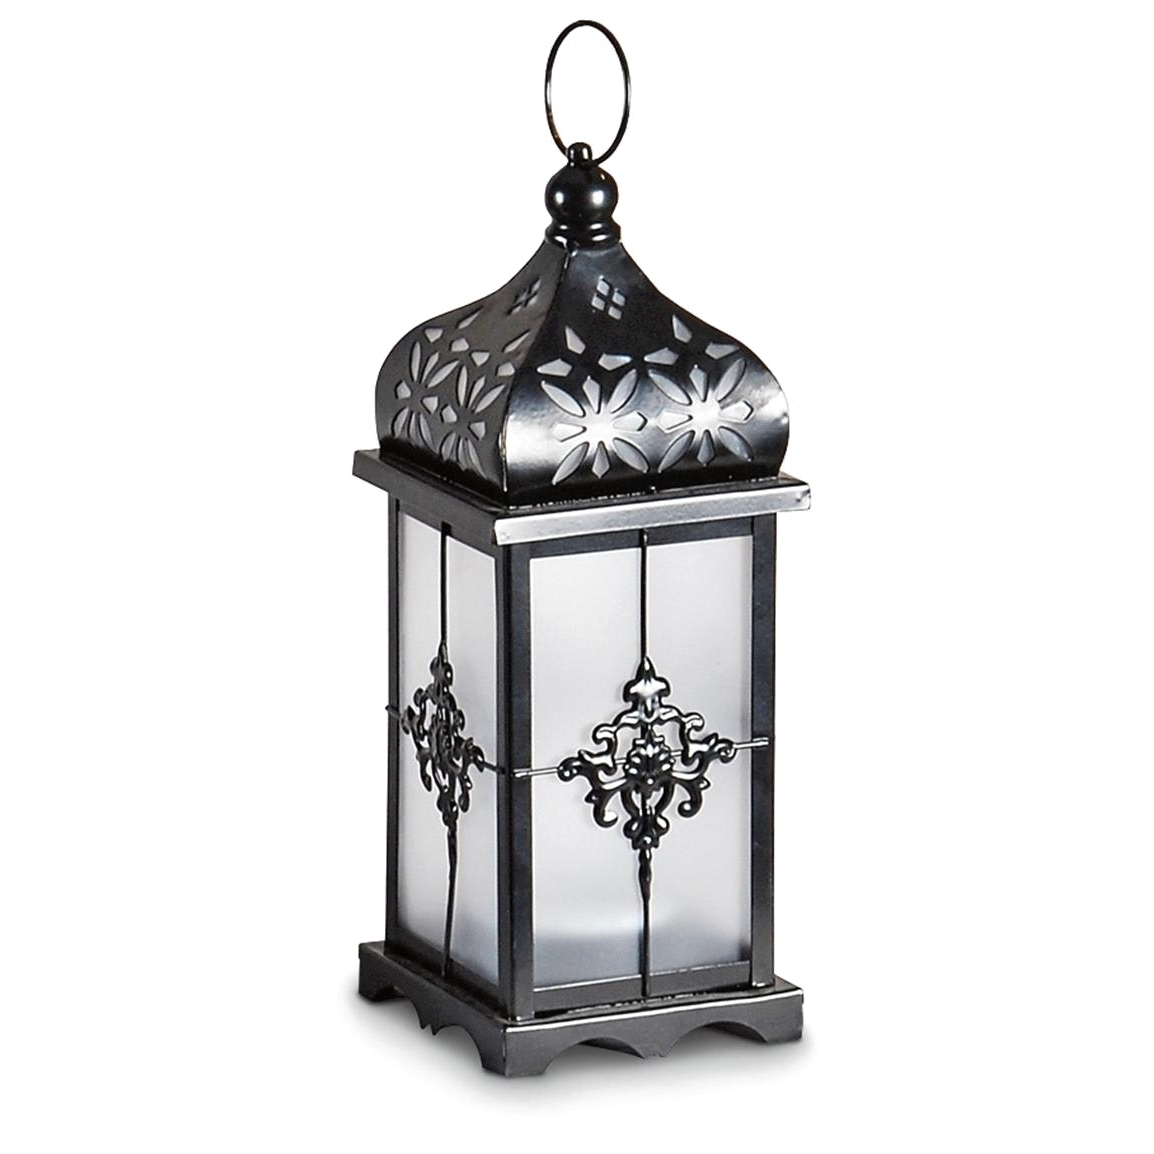 Solar Powered Outdoor Hanging Lanterns With Newest Solar Powered Outdoor Pendant Light – Outdoor Designs (View 2 of 20)